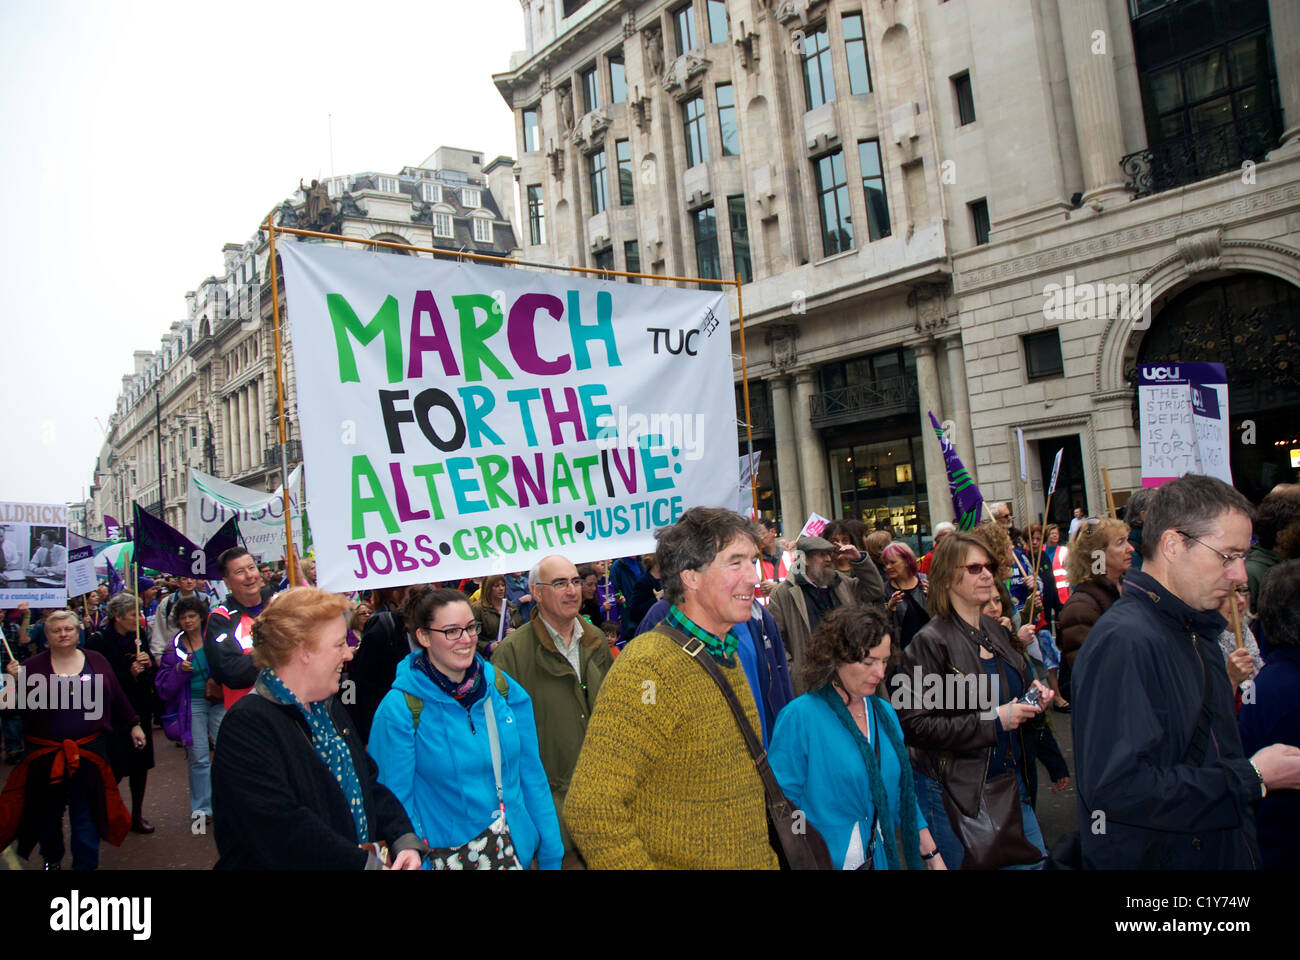 Marchers at March for the Alternative rally organised by the TUC, London, England - Stock Image